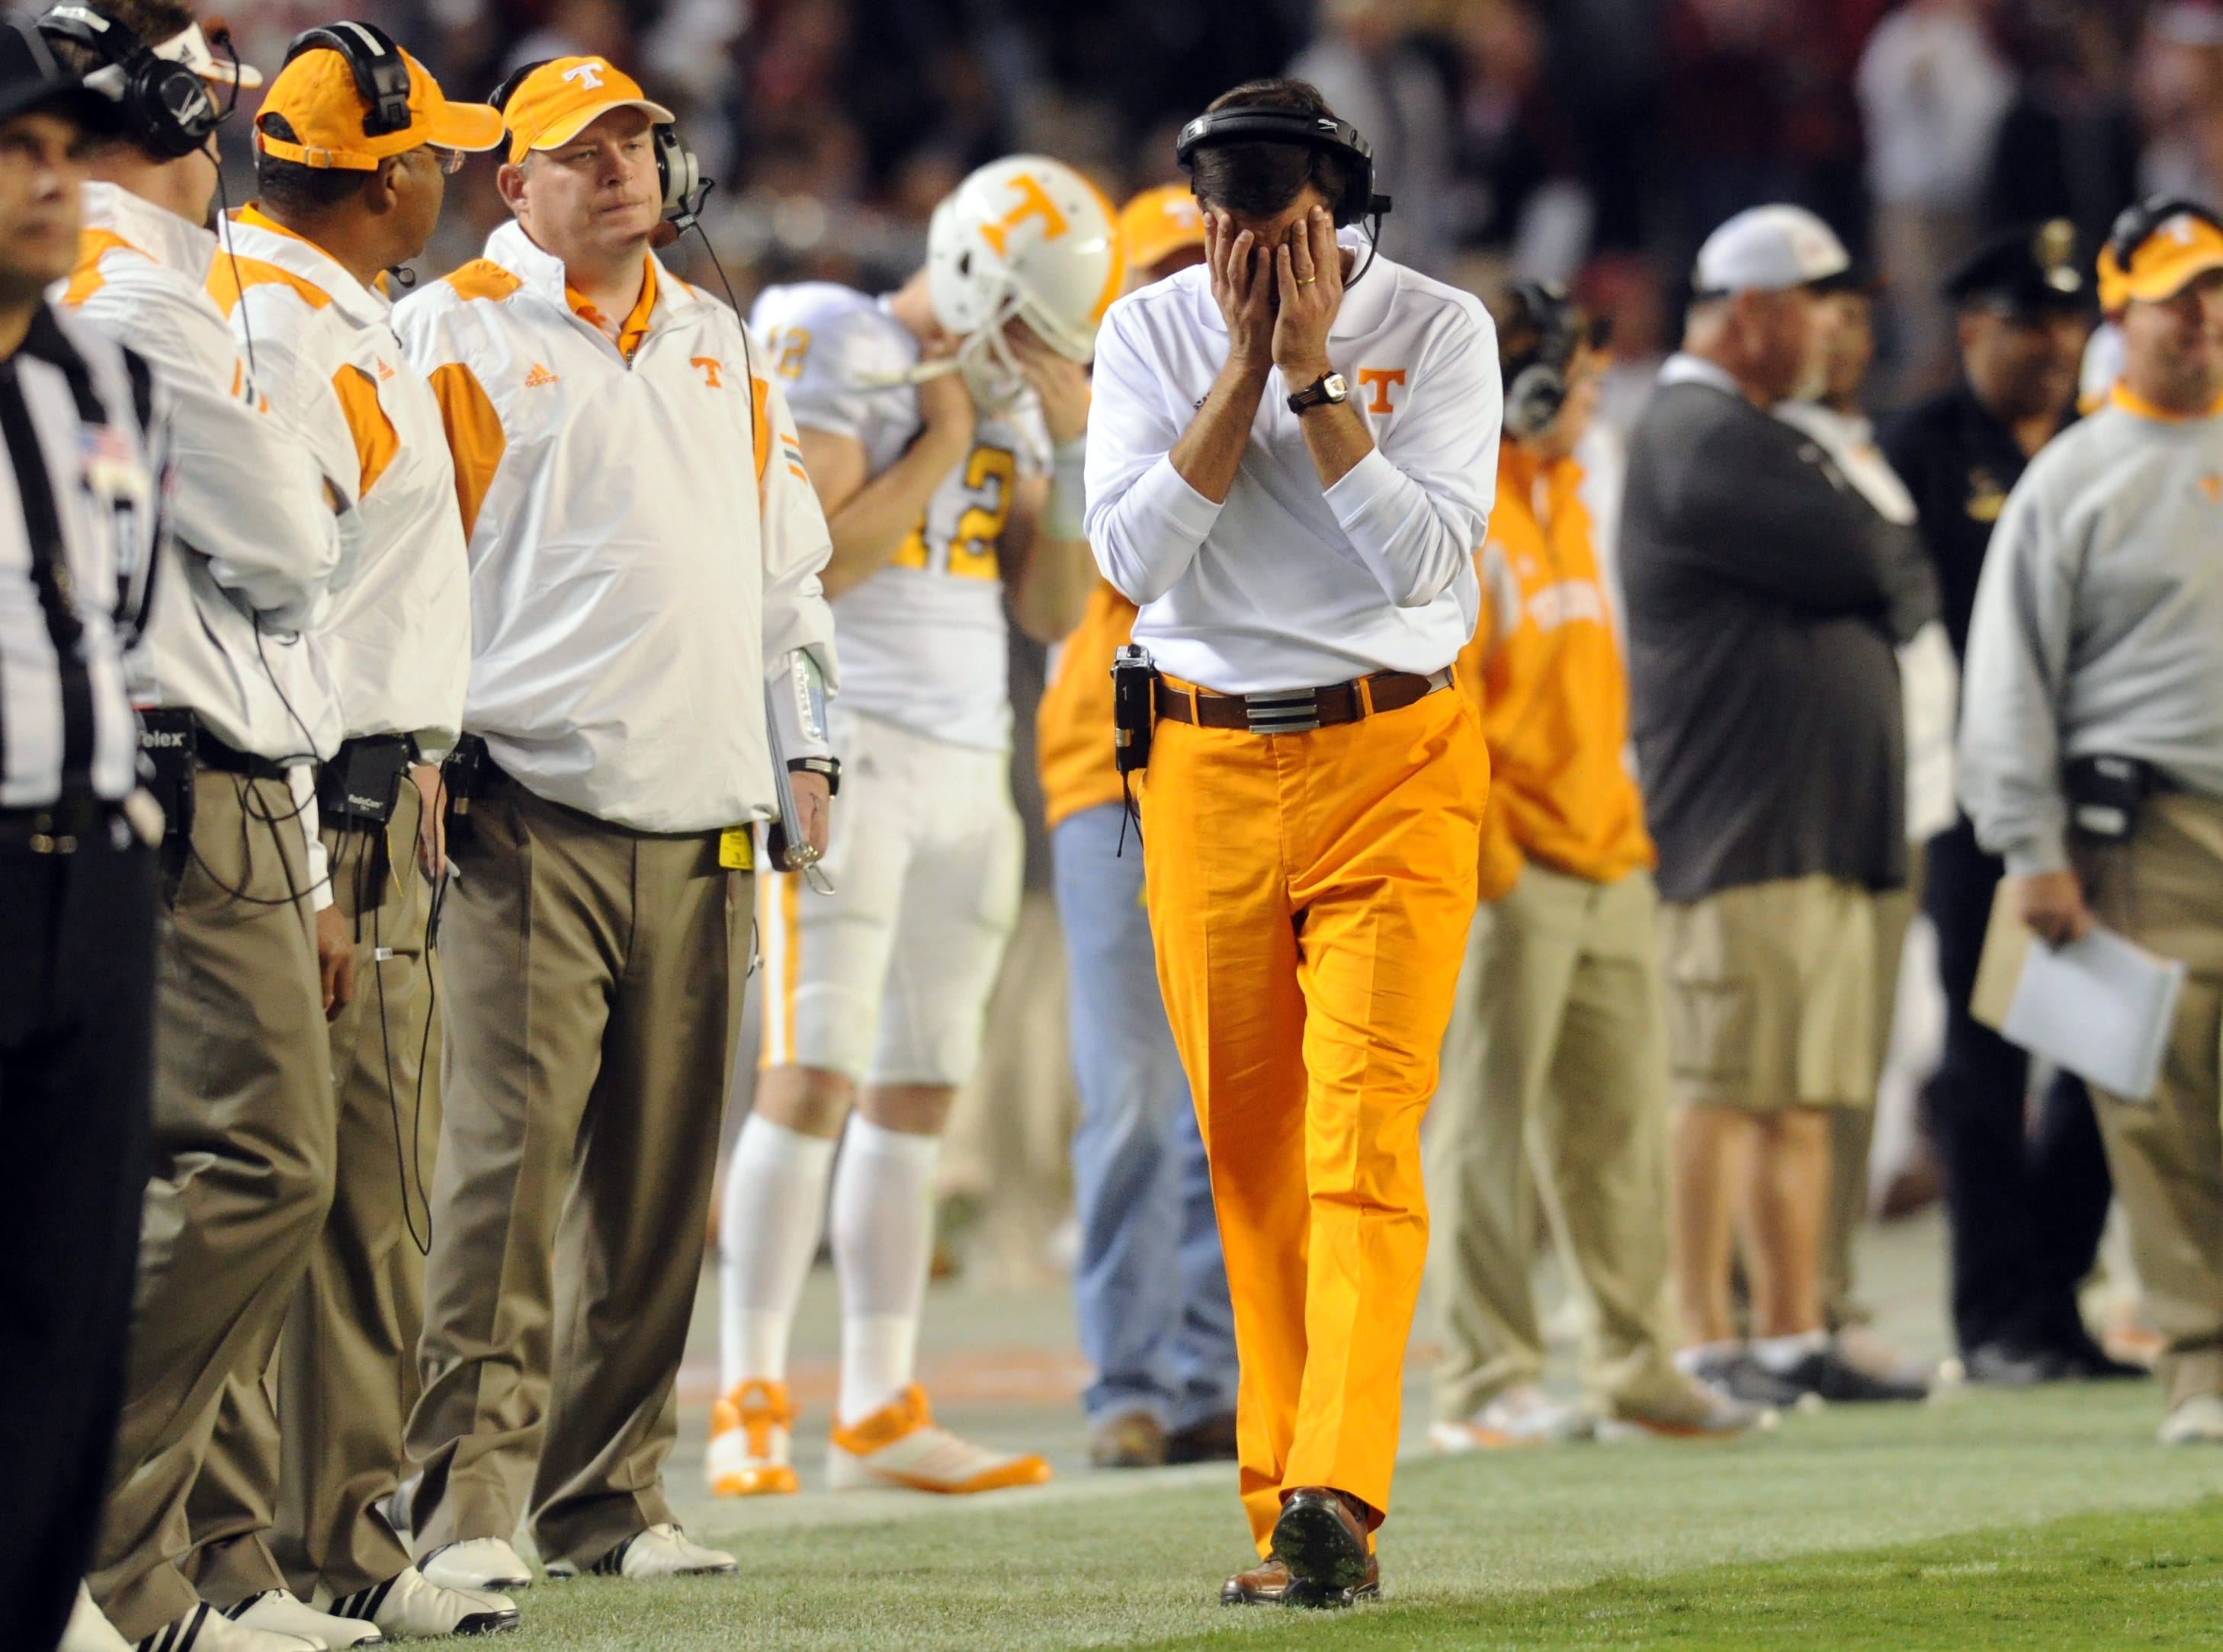 Tennessee head coach Derek Dooley walks the sideline with his head in his hands as Alabama closes out a 37-6 win during the fourth quarter at Bryant-Denny Stadium in Tuscaloosa, Ala., Saturday, Oct. 22, 2011.